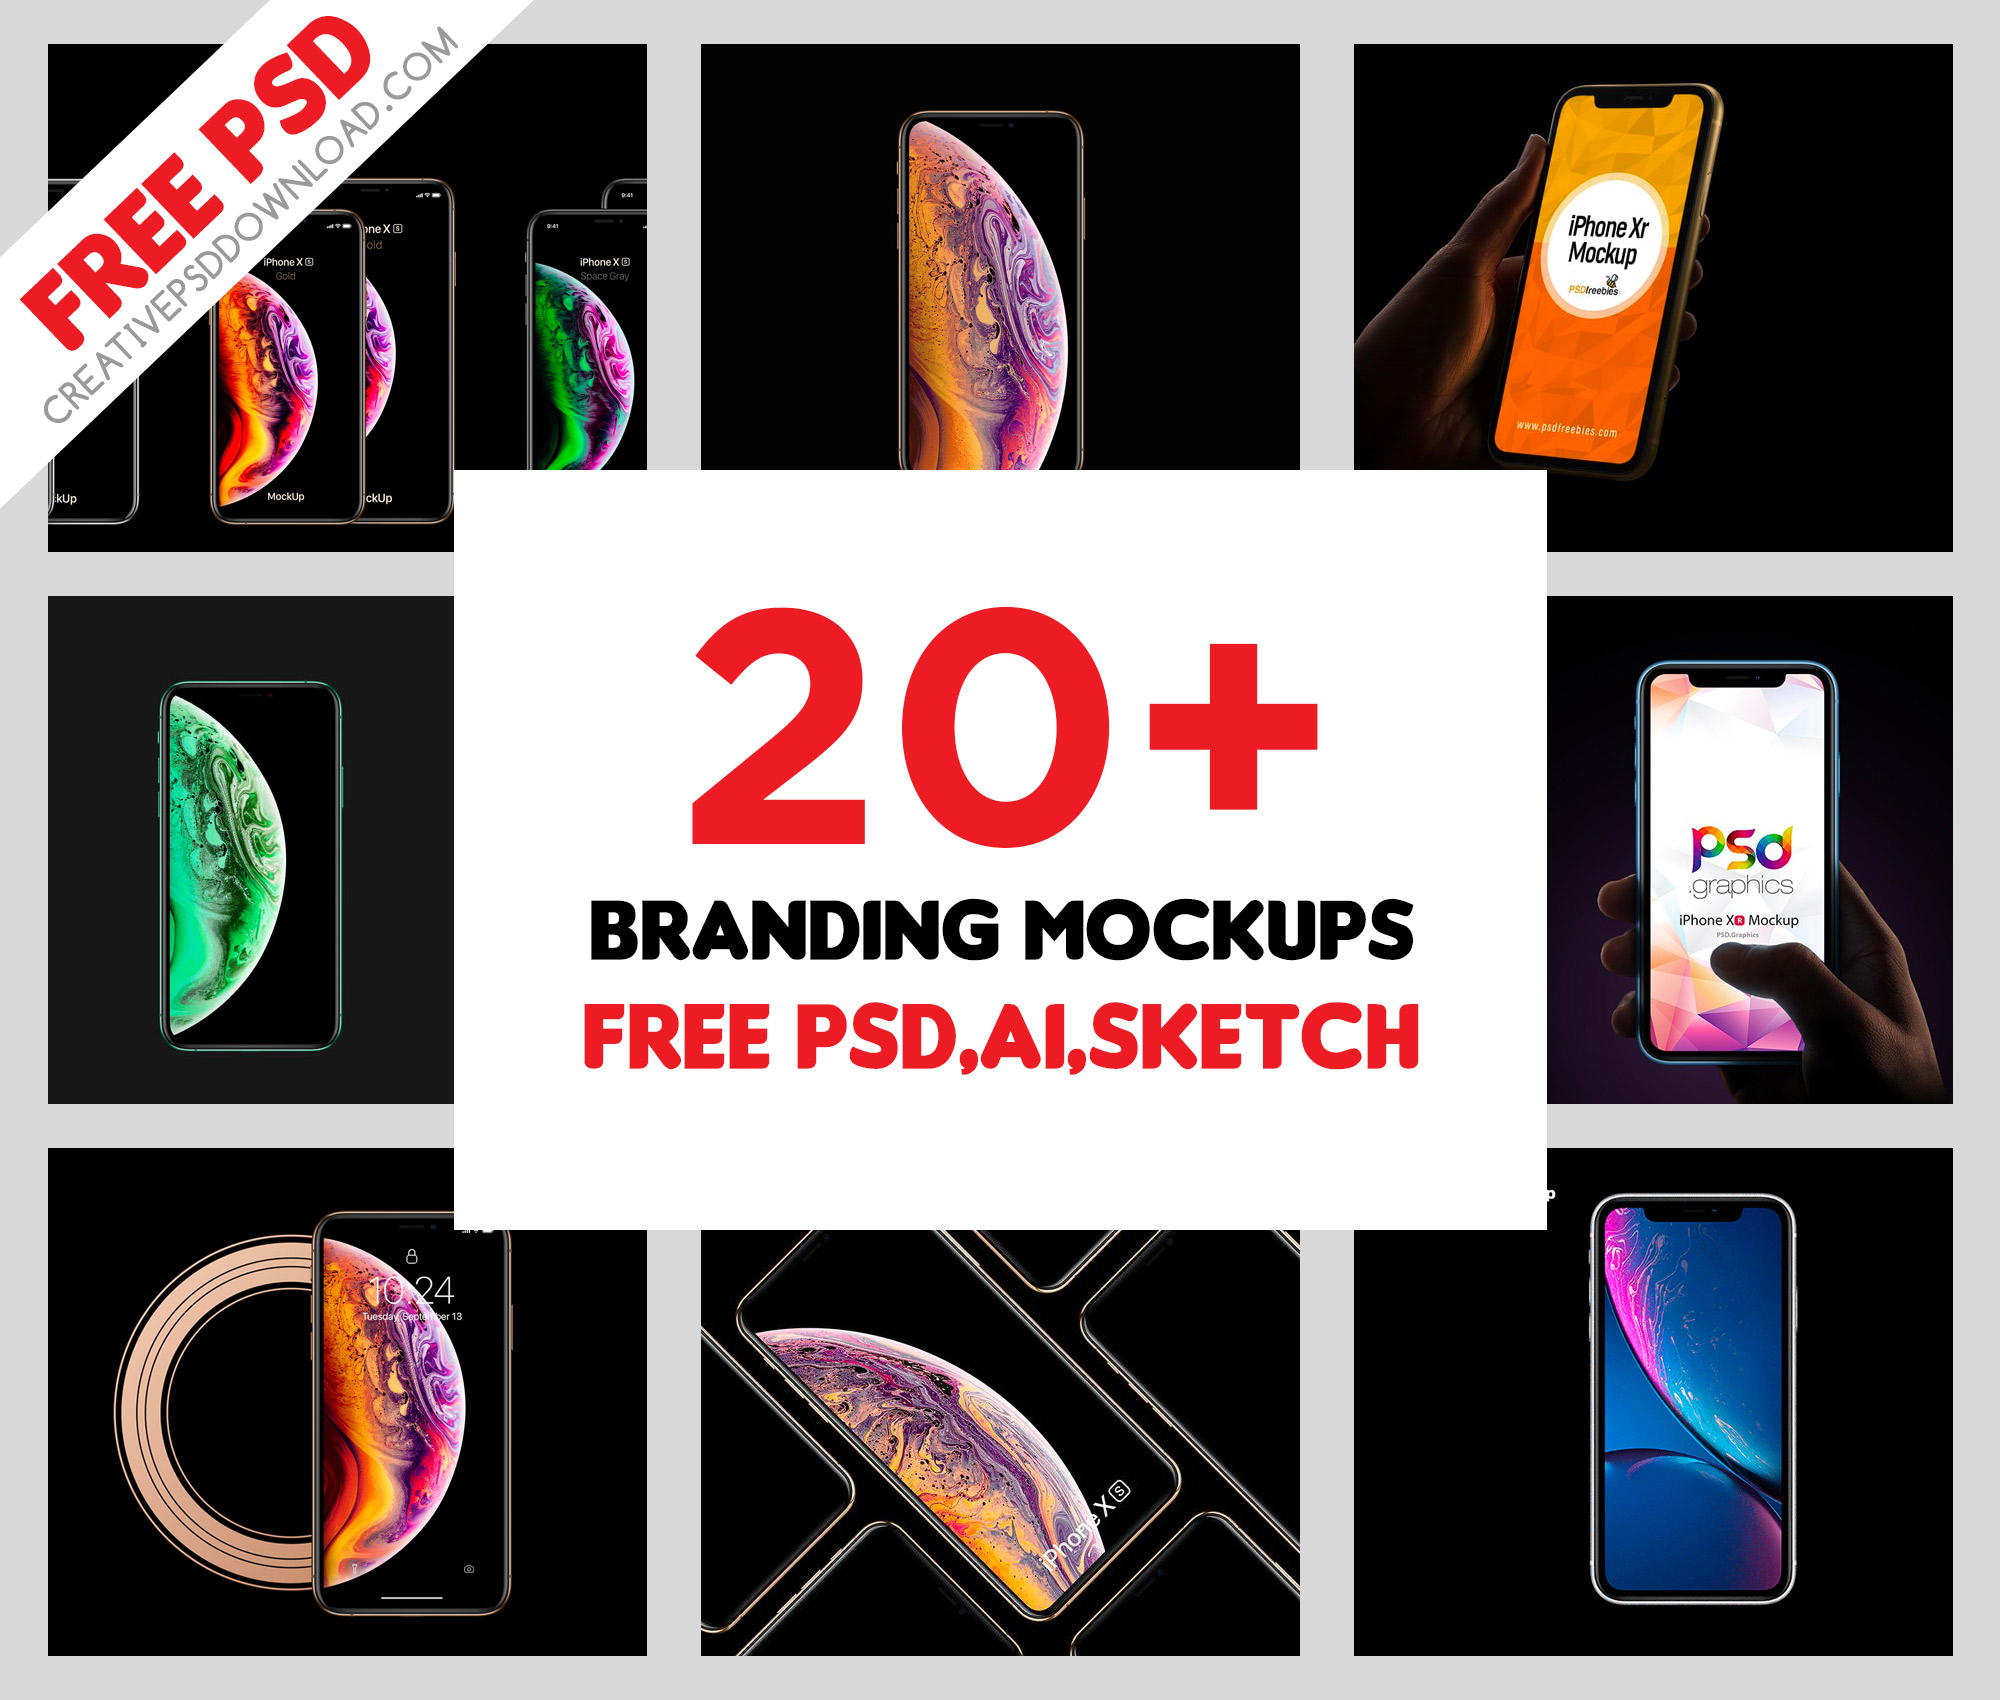 30+ iPhone 11, 11 Pro, 11 Pro Max, XS, XS Max and Xr Free Psd Mockups